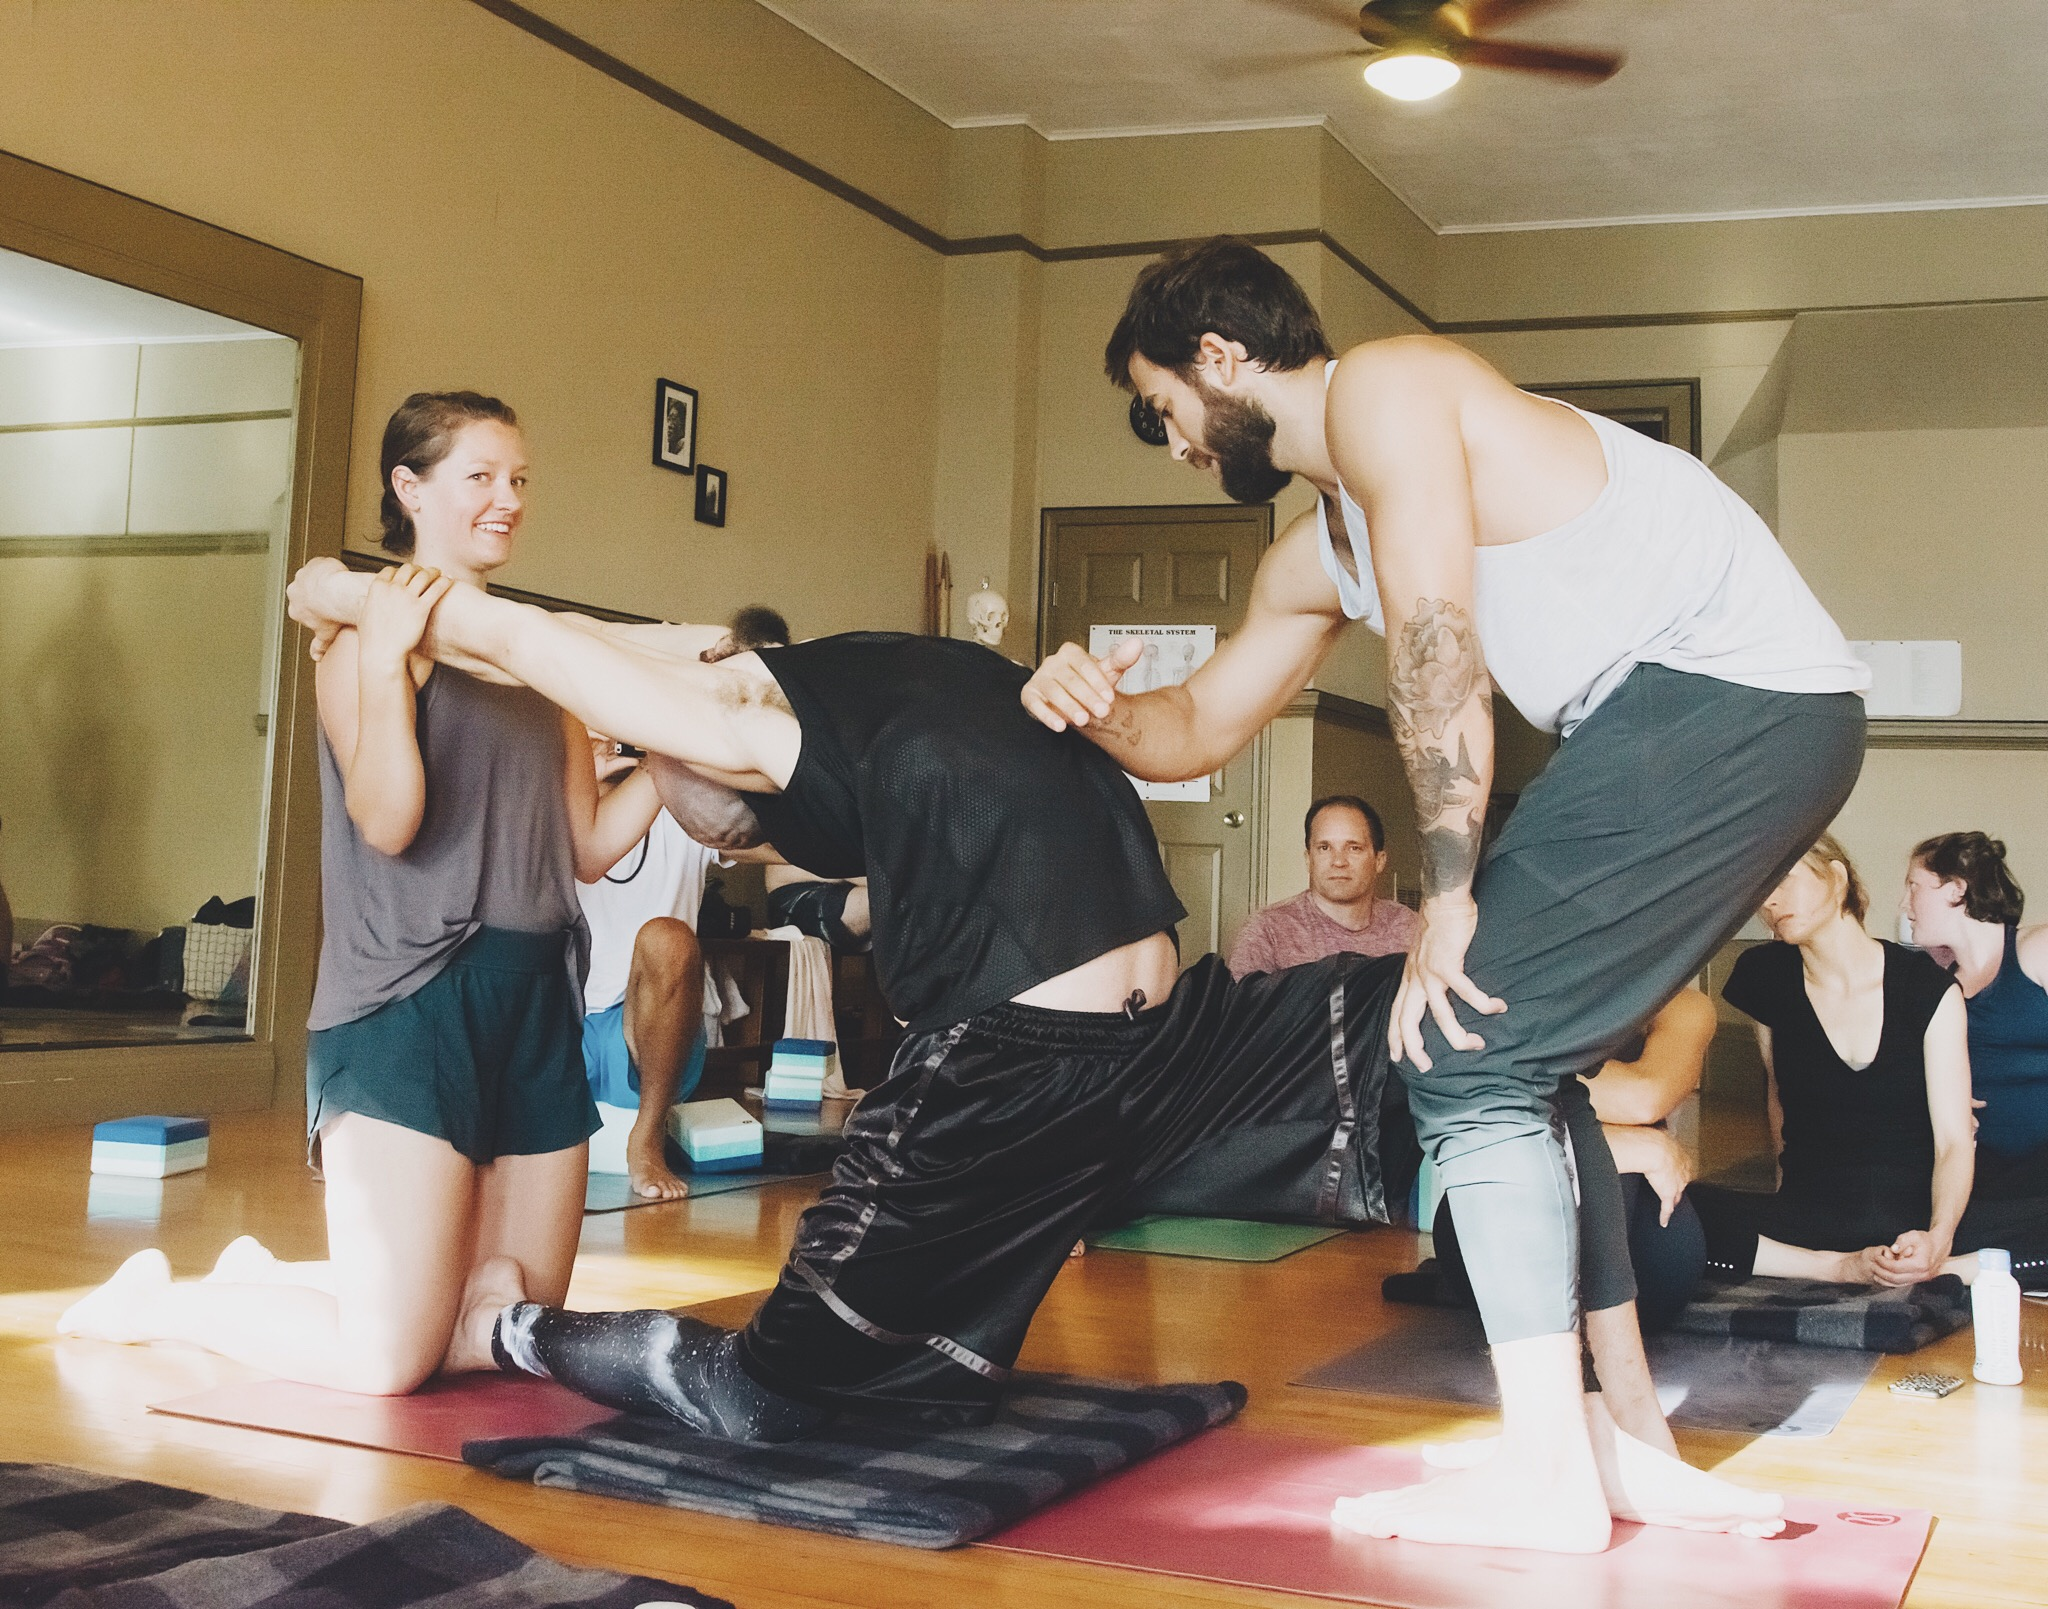 """""""Painting"""" our partners to help guide them deeper into their backbends."""